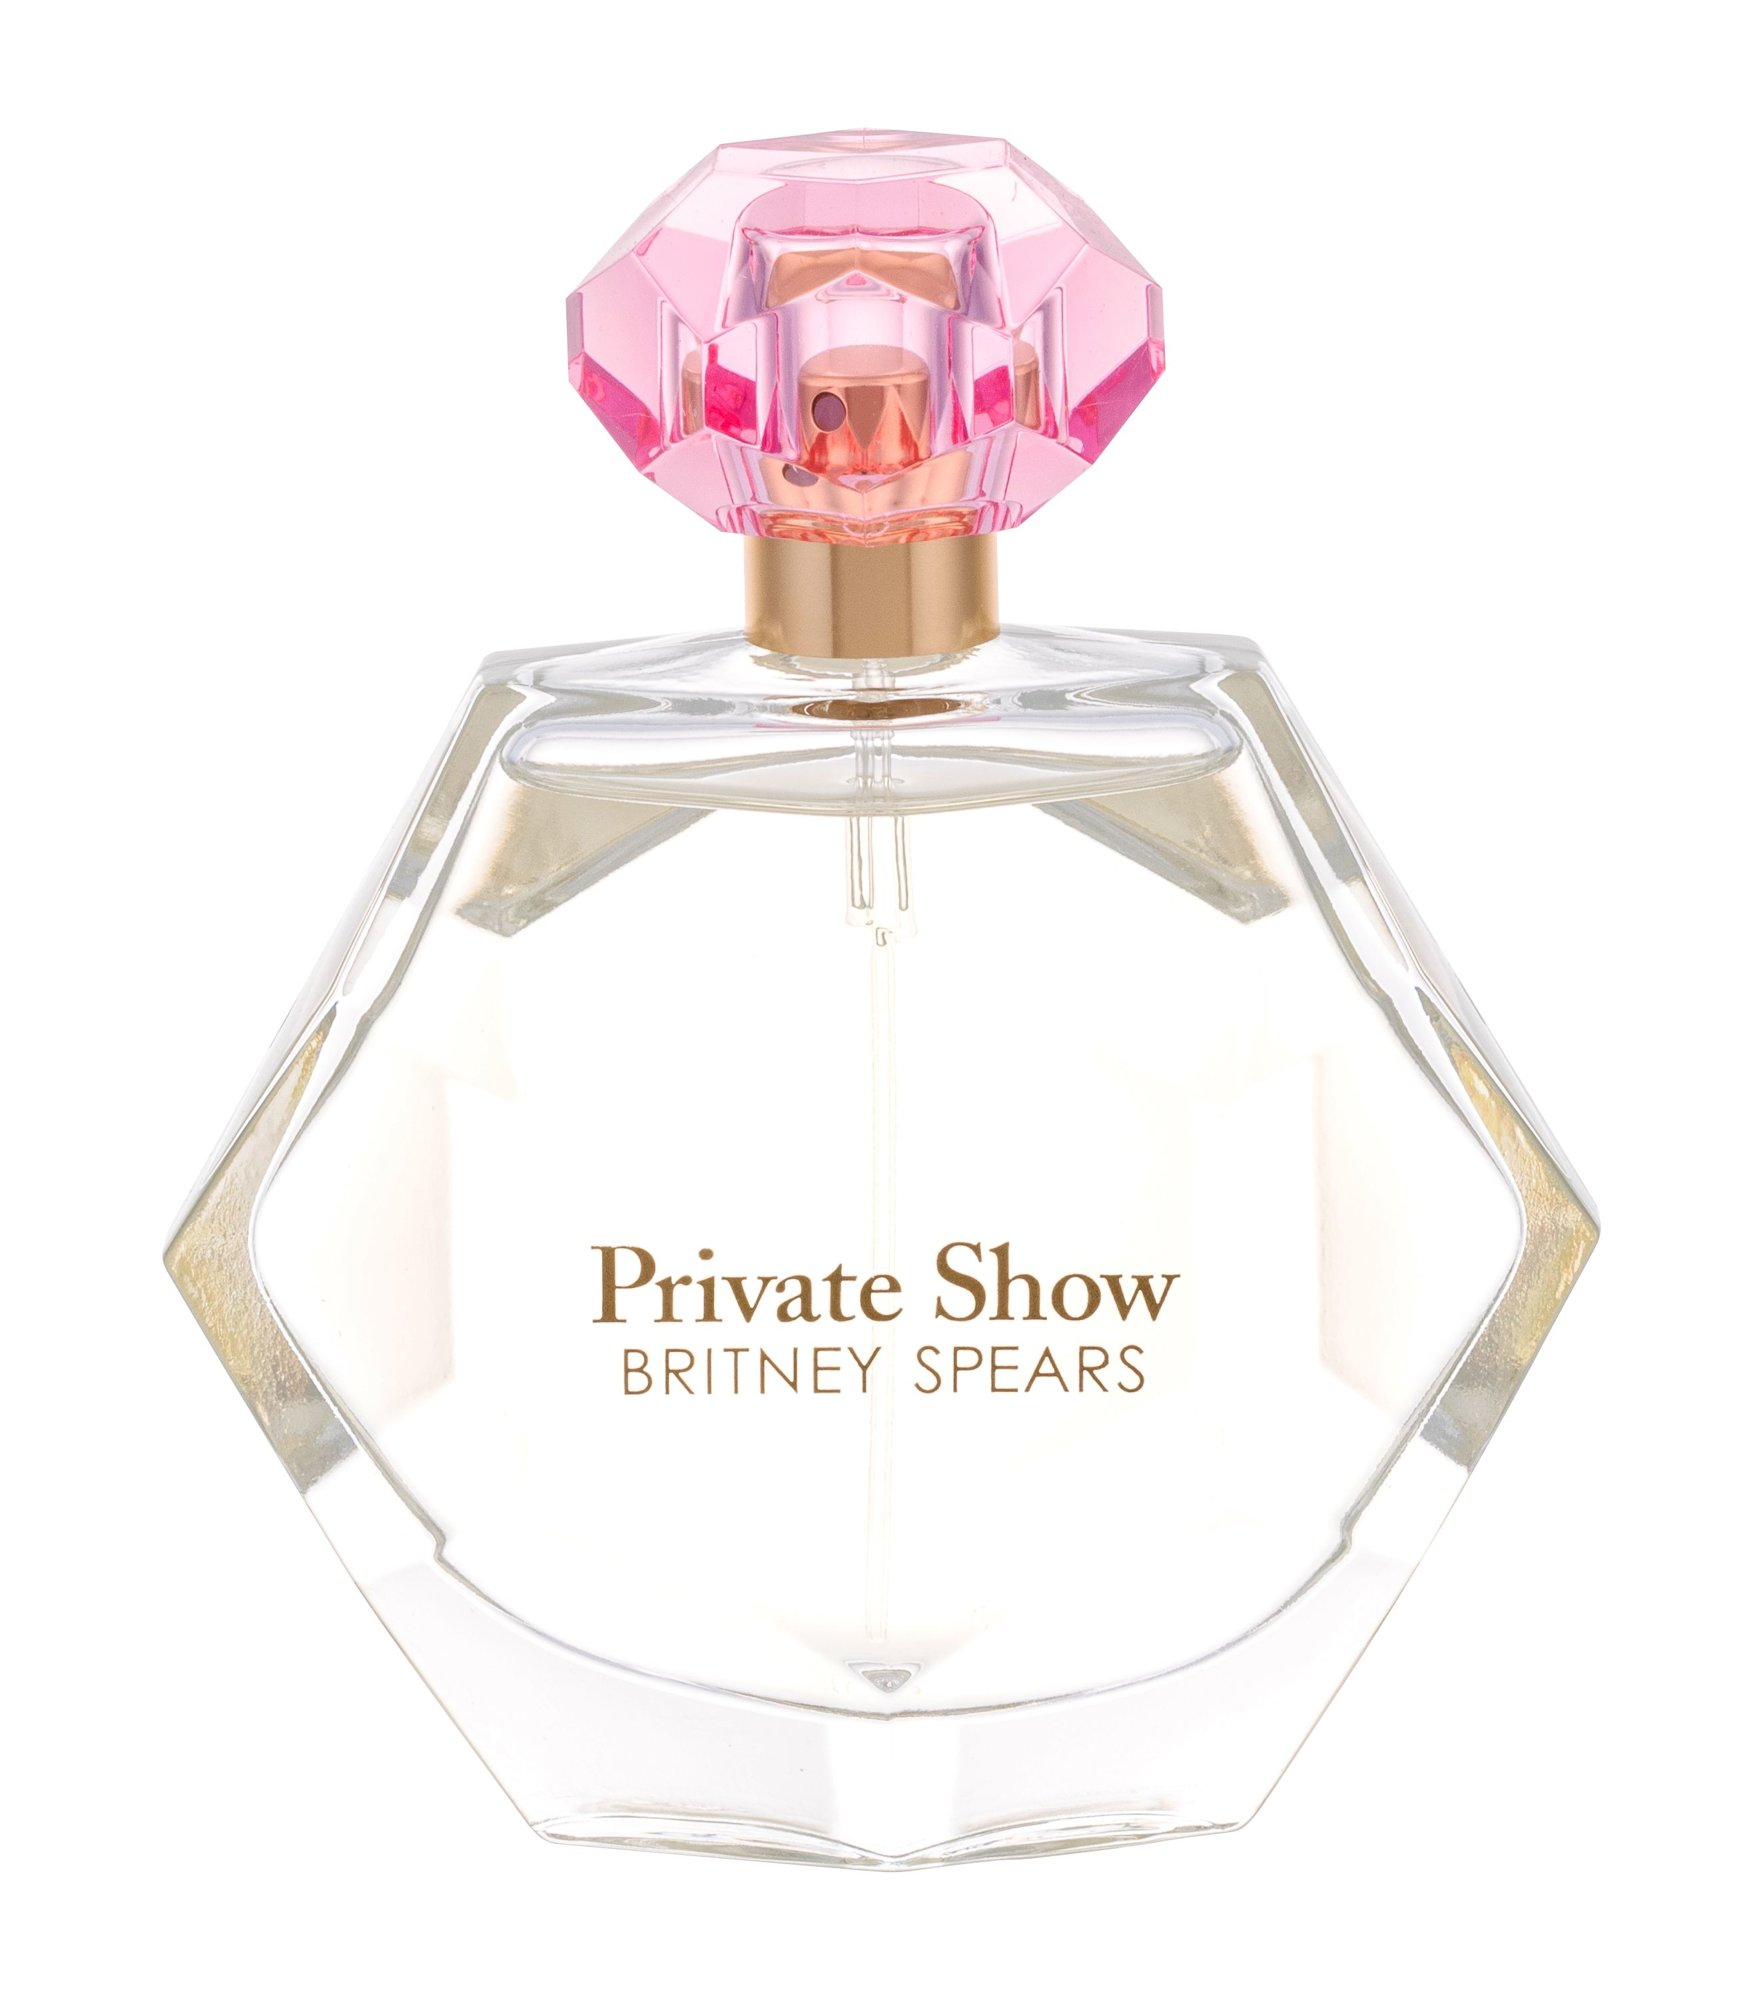 Britney Spears Private Show, Parfumovaná voda 100ml